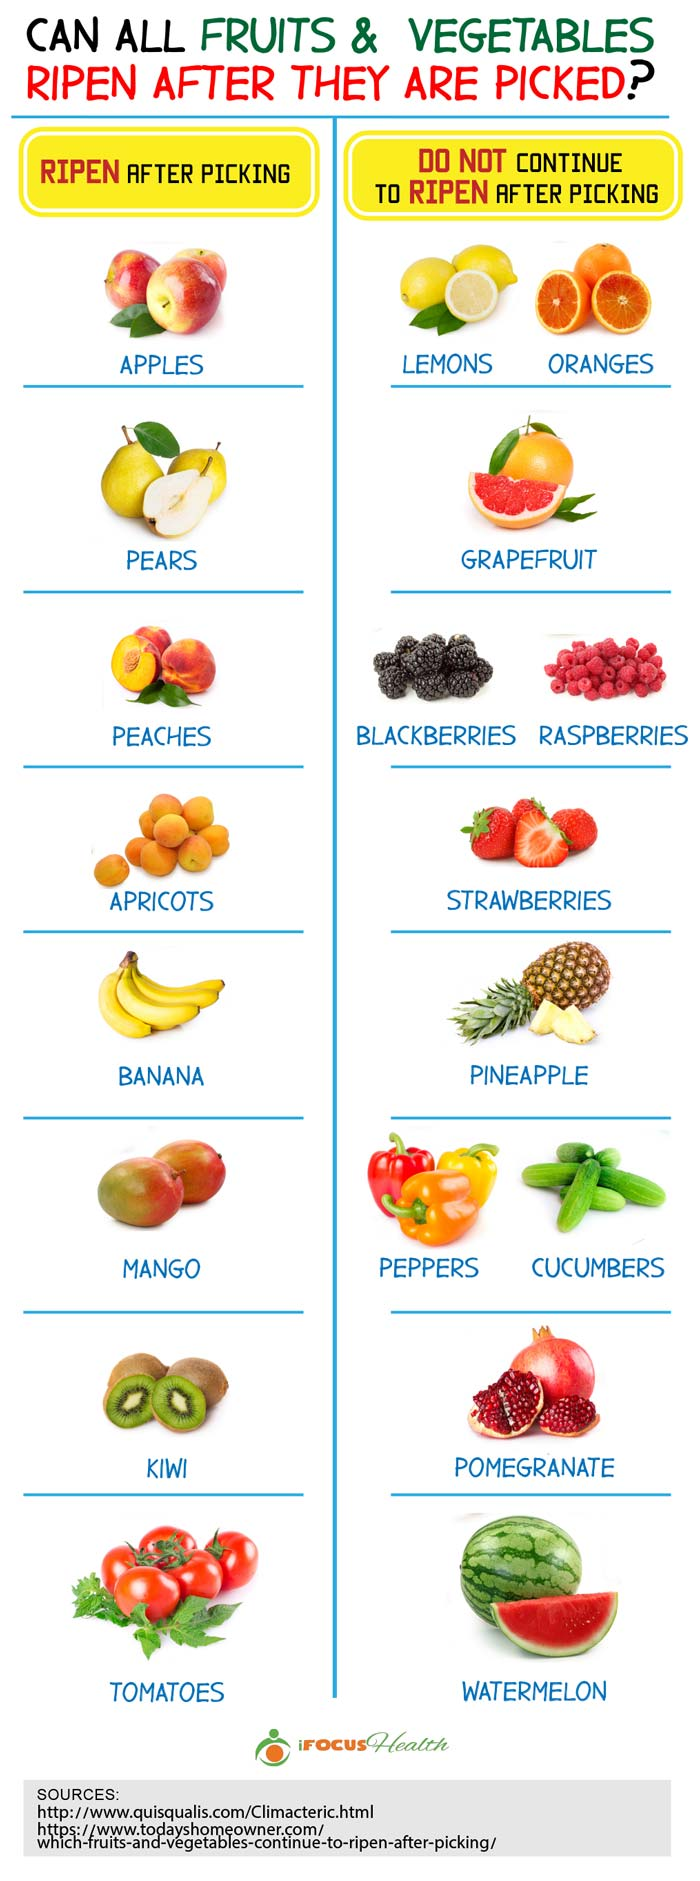 what fruits and vegetables ripen after picked